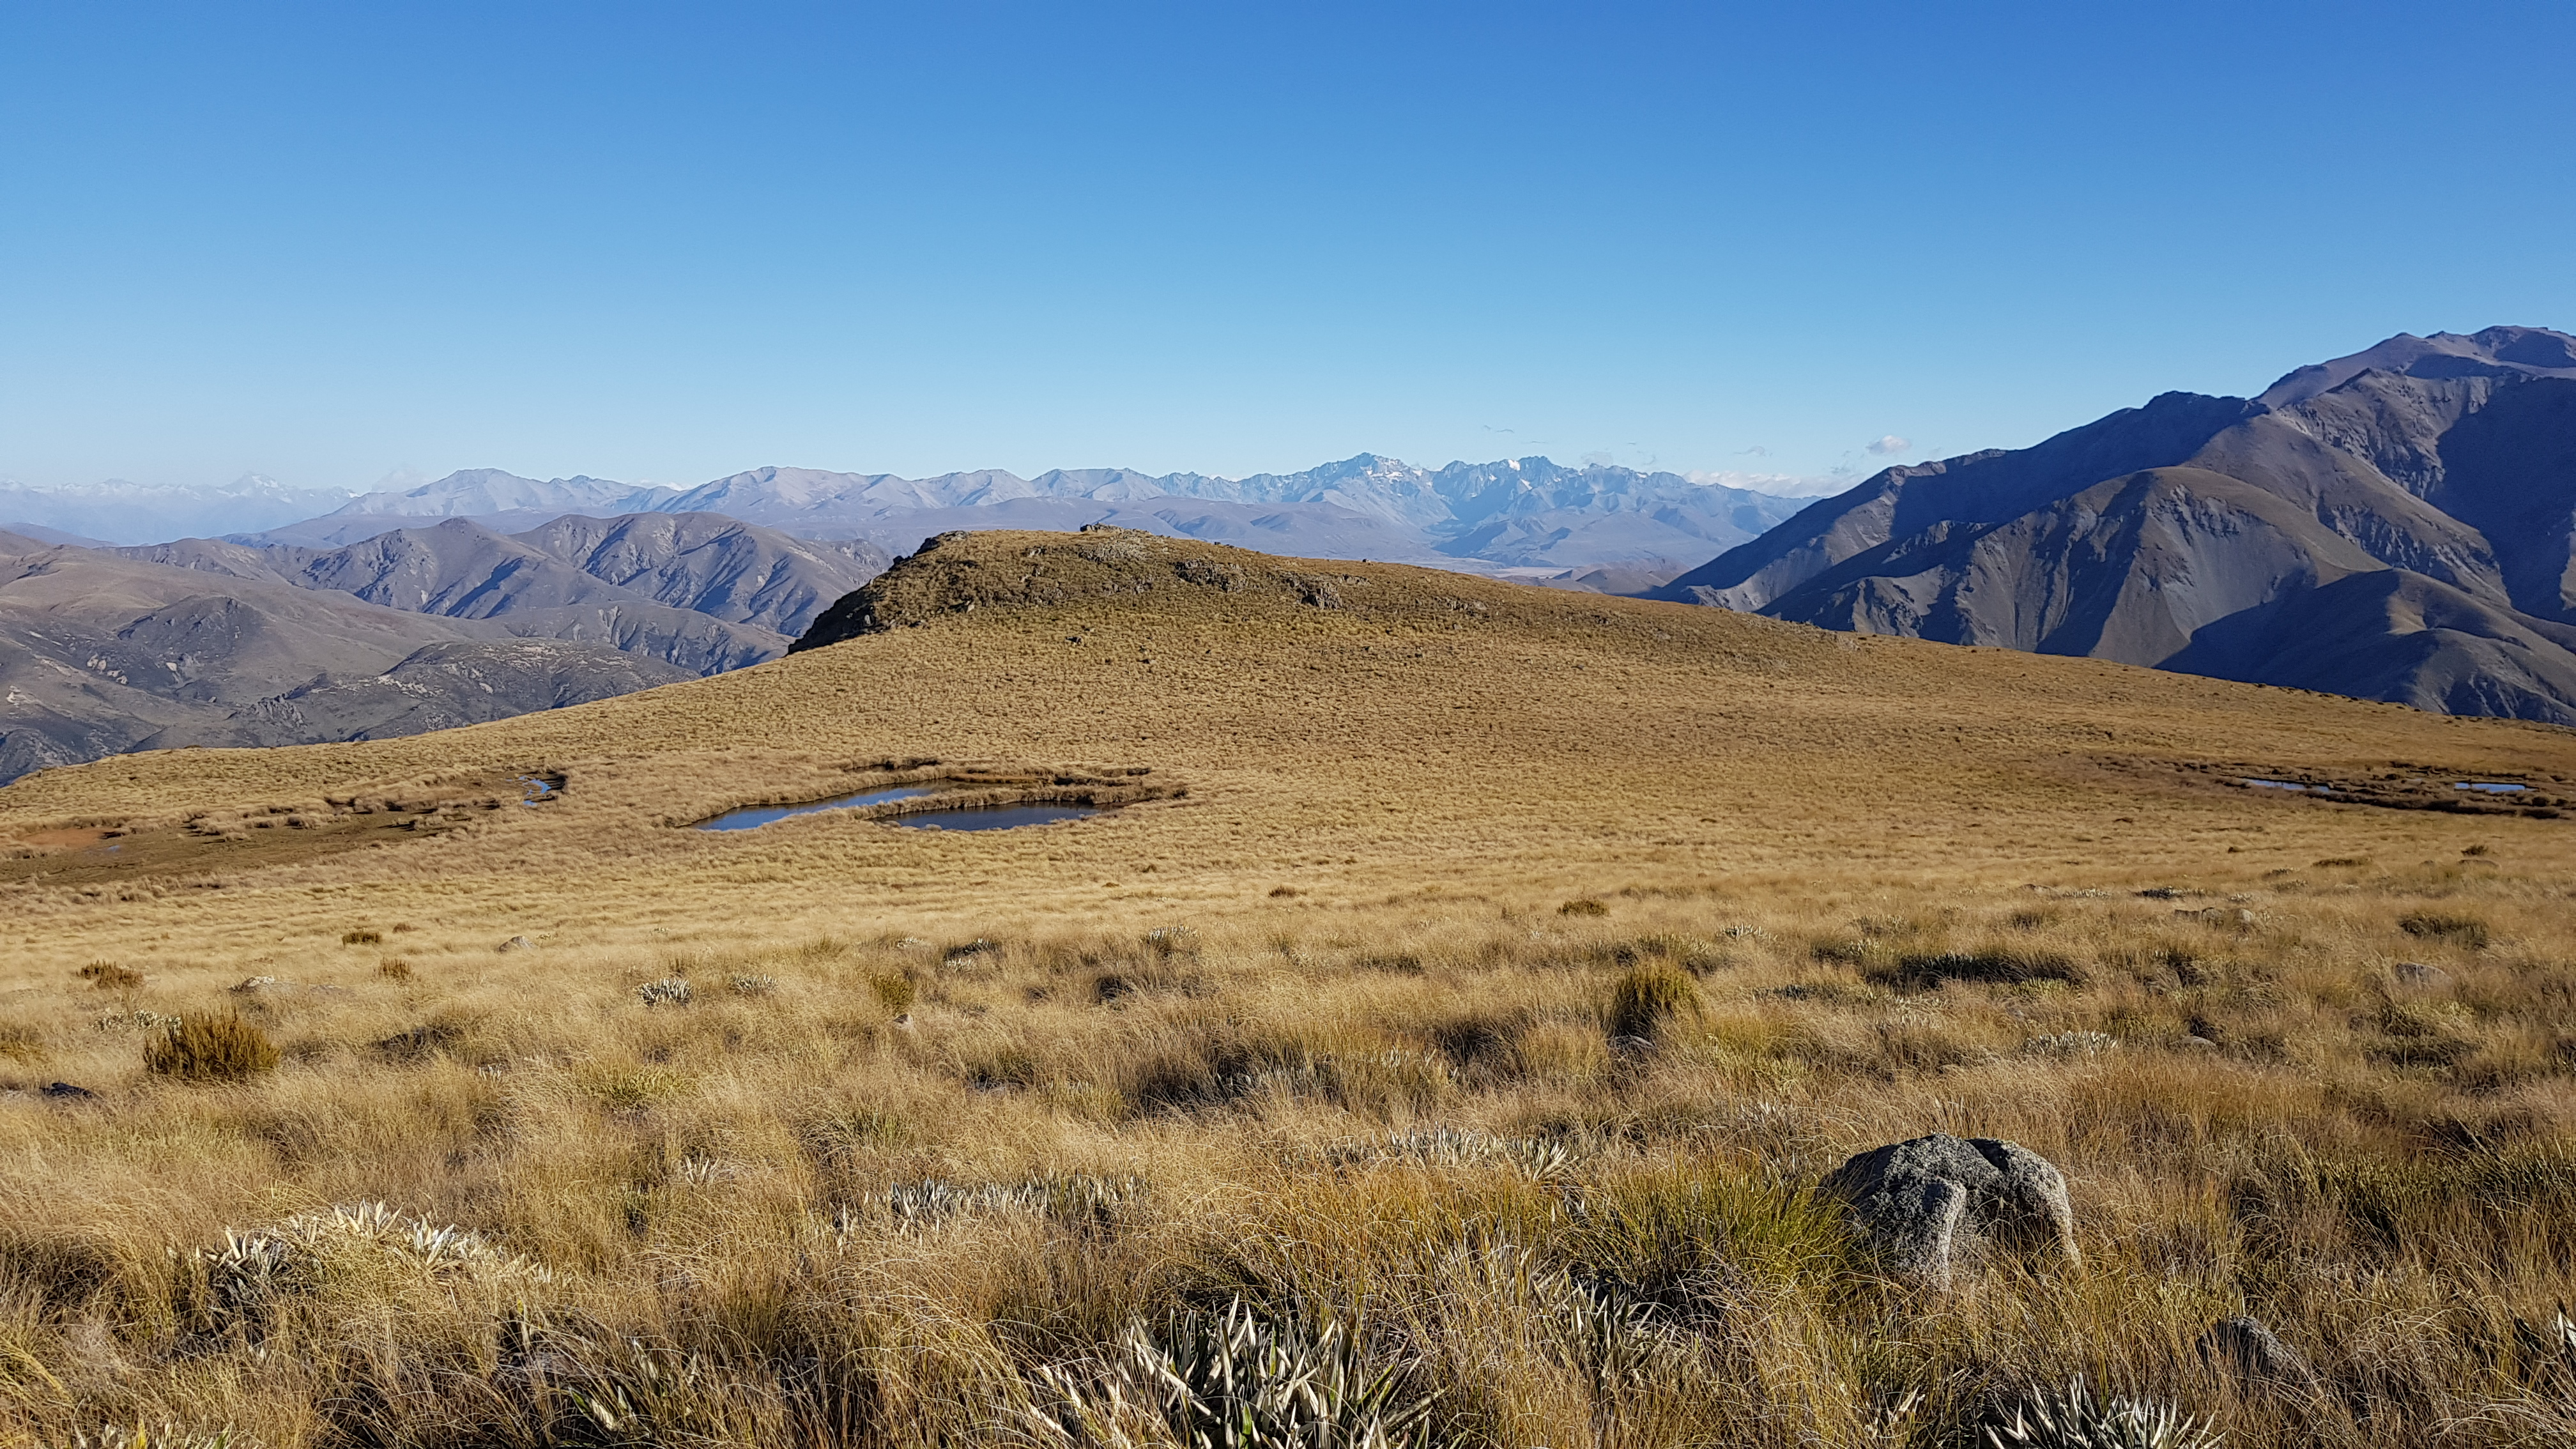 From the high plateau on Mt Somers looking West